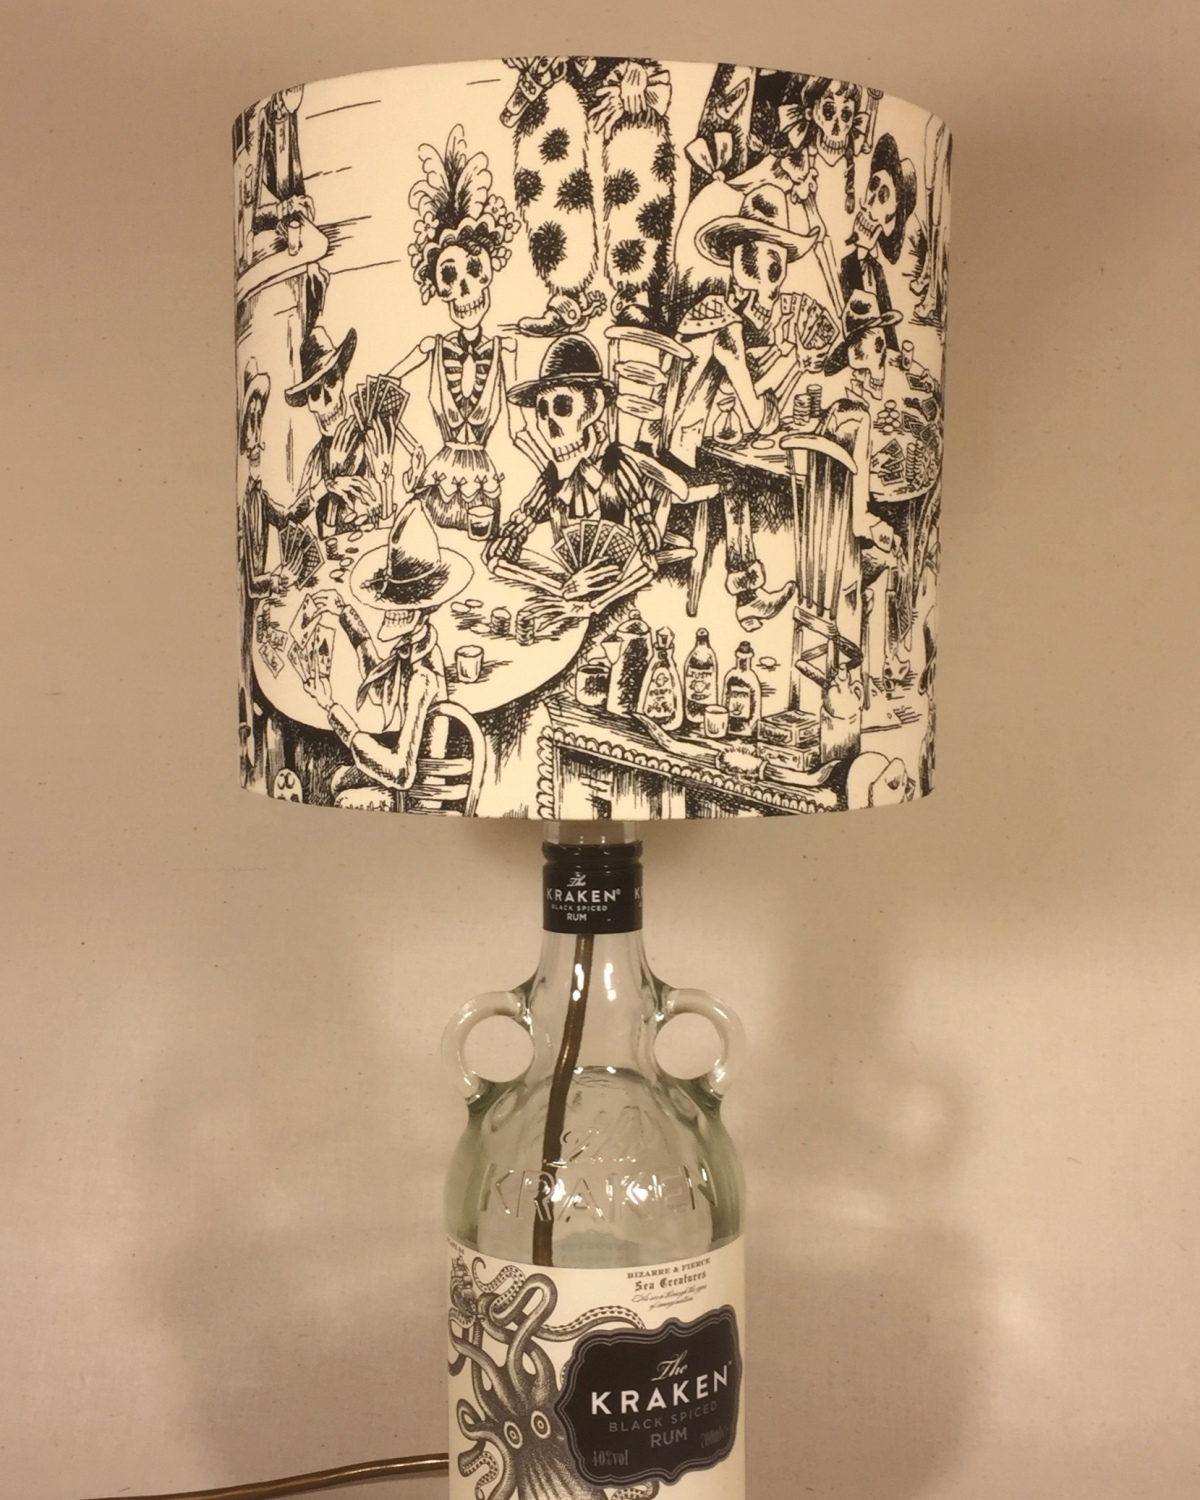 Skeleton saloon bespoke lampshade